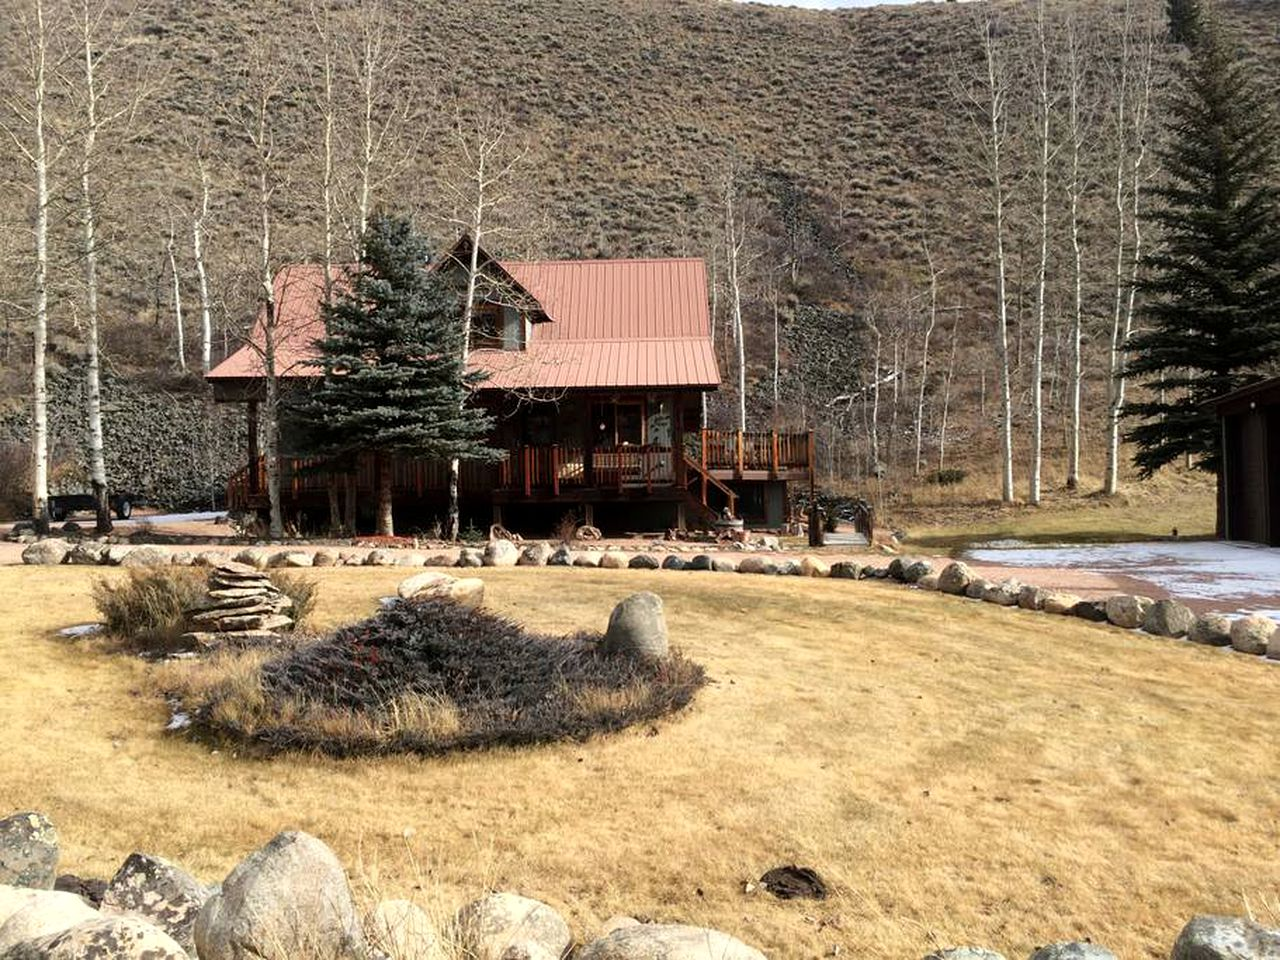 Cabins (Ohio City, Colorado, United States)